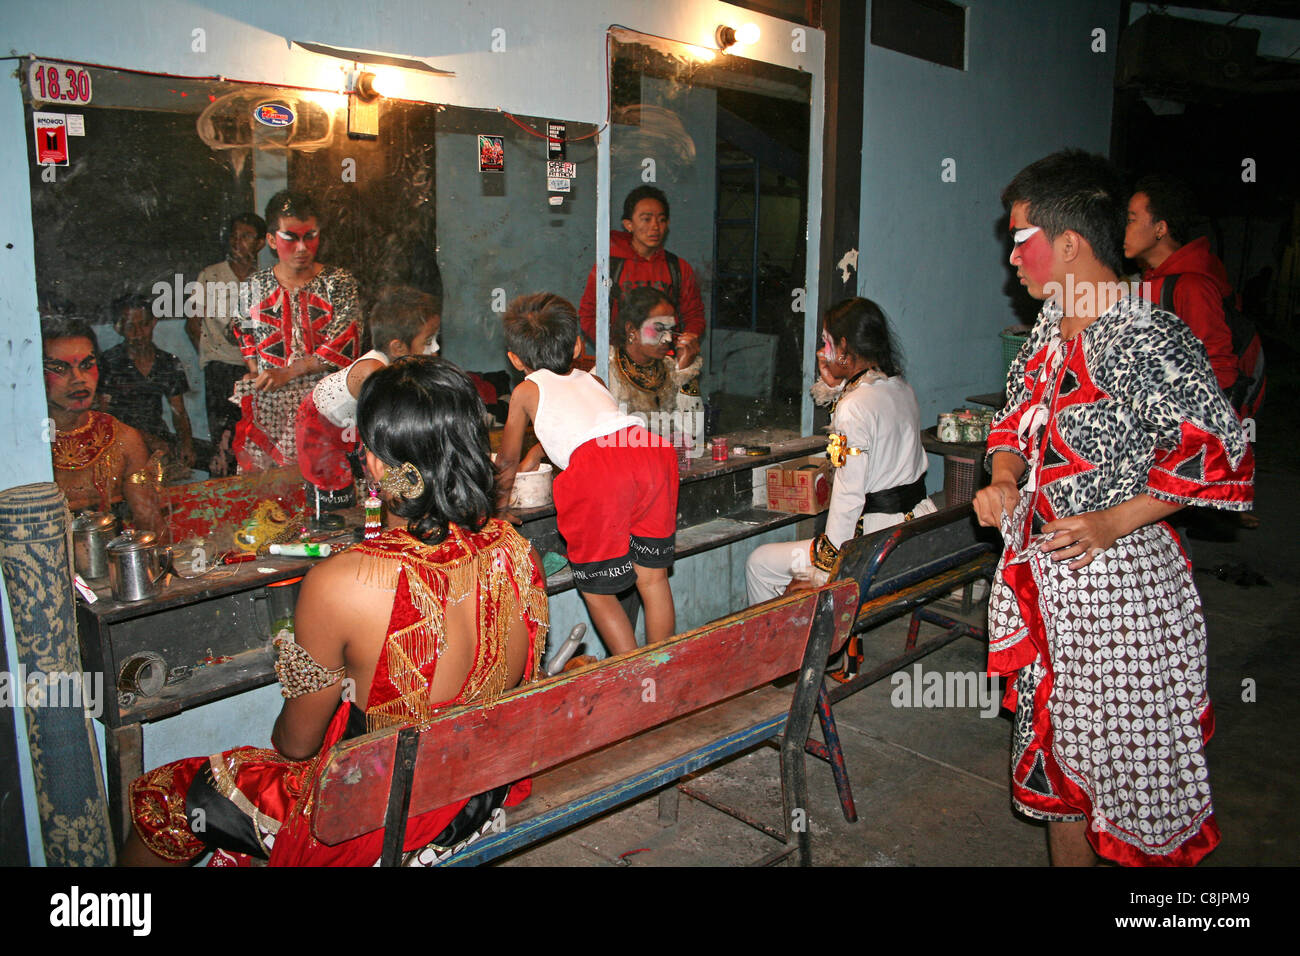 Dance Performers Backstage Before A Production Of The Hindu Epic 'The Ramayana' - Stock Image